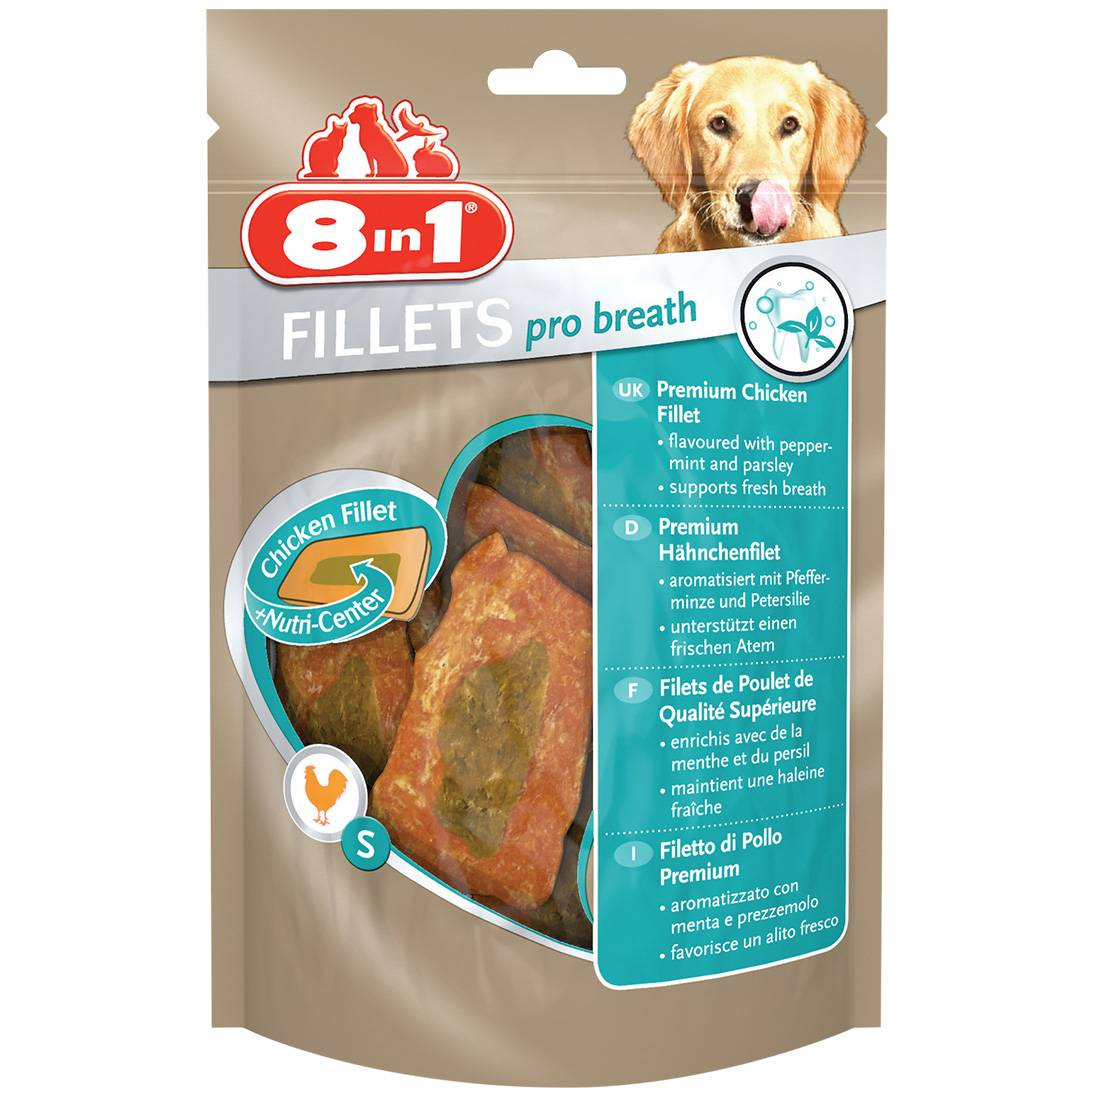 8in1 Fillets Pro Breath Taille : S